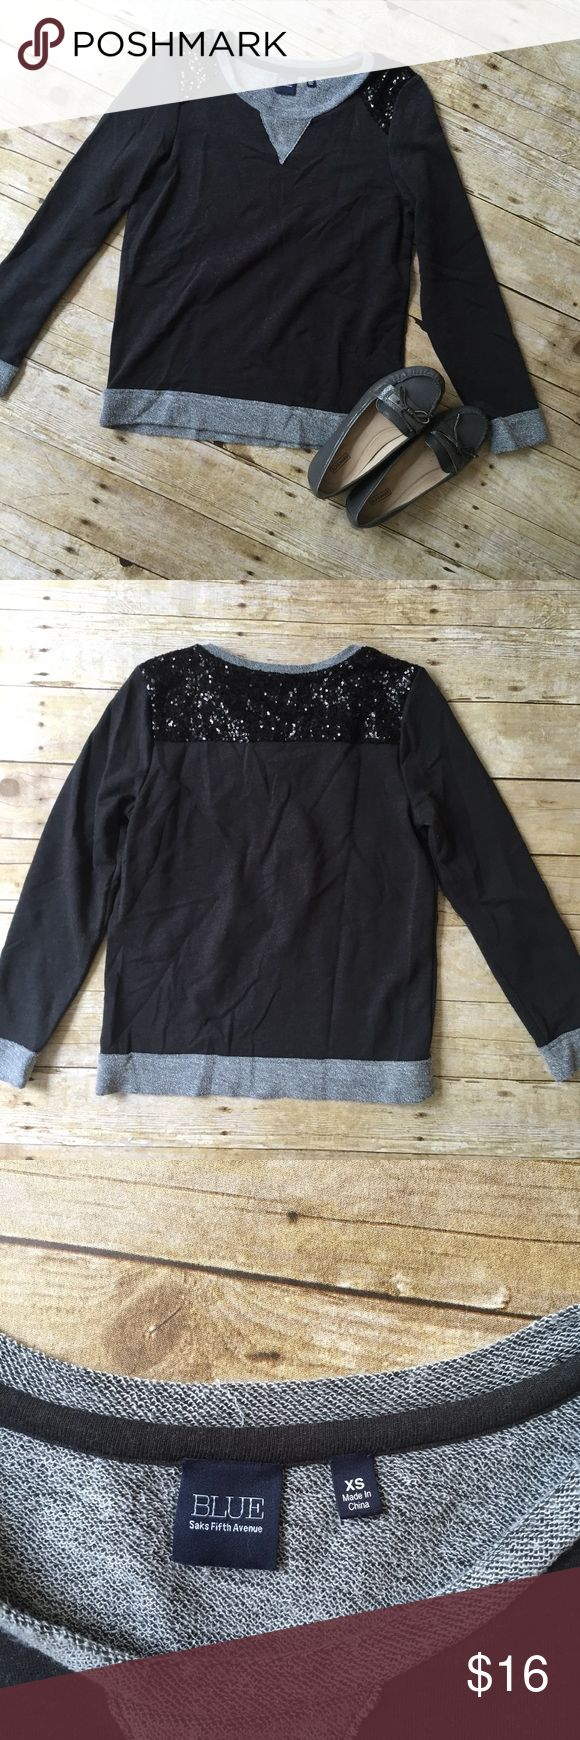 ✨Sale✨Saks Fifth Avenue Sequin Sweater Gently worn! All sequins appear to be intact. Saks Fifth Avenue Sweaters Crew & Scoop Necks